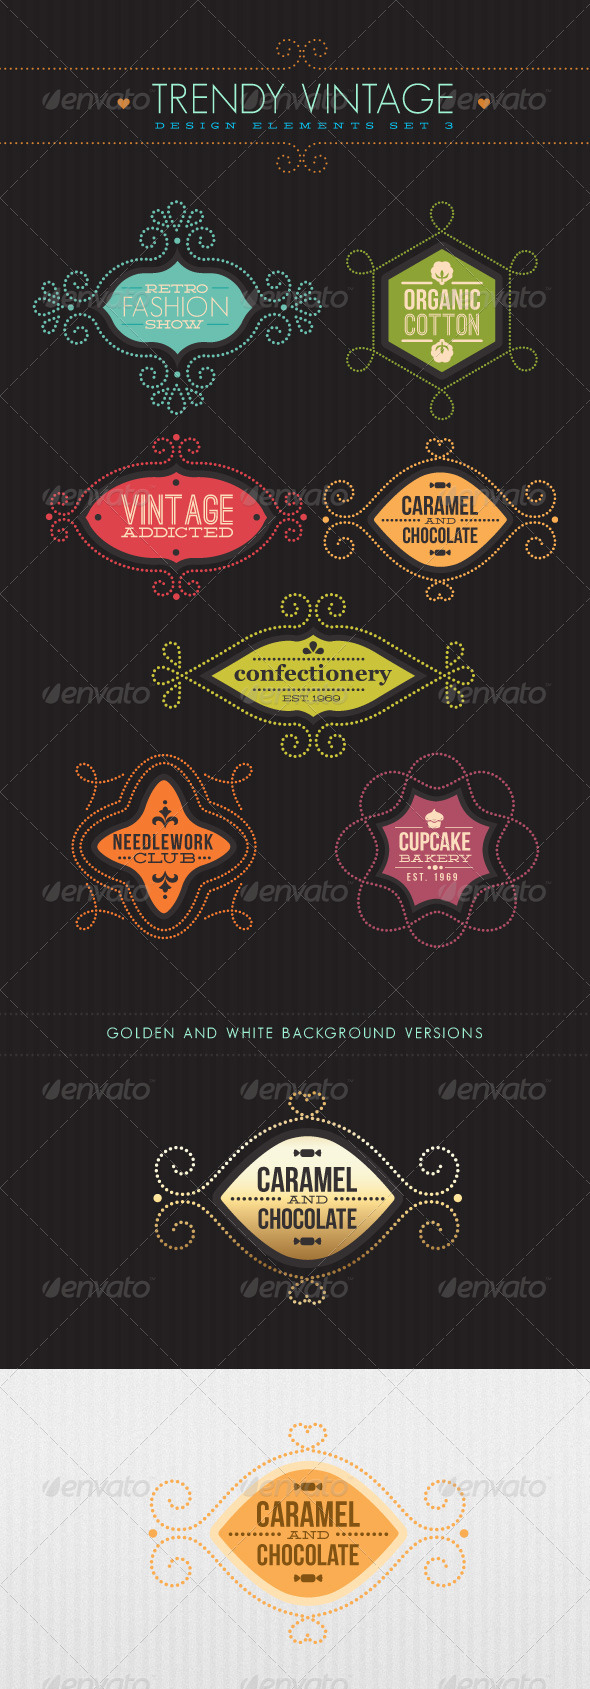 Trendy Vintage Vector Design Elements Set 3 - Flourishes / Swirls Decorative